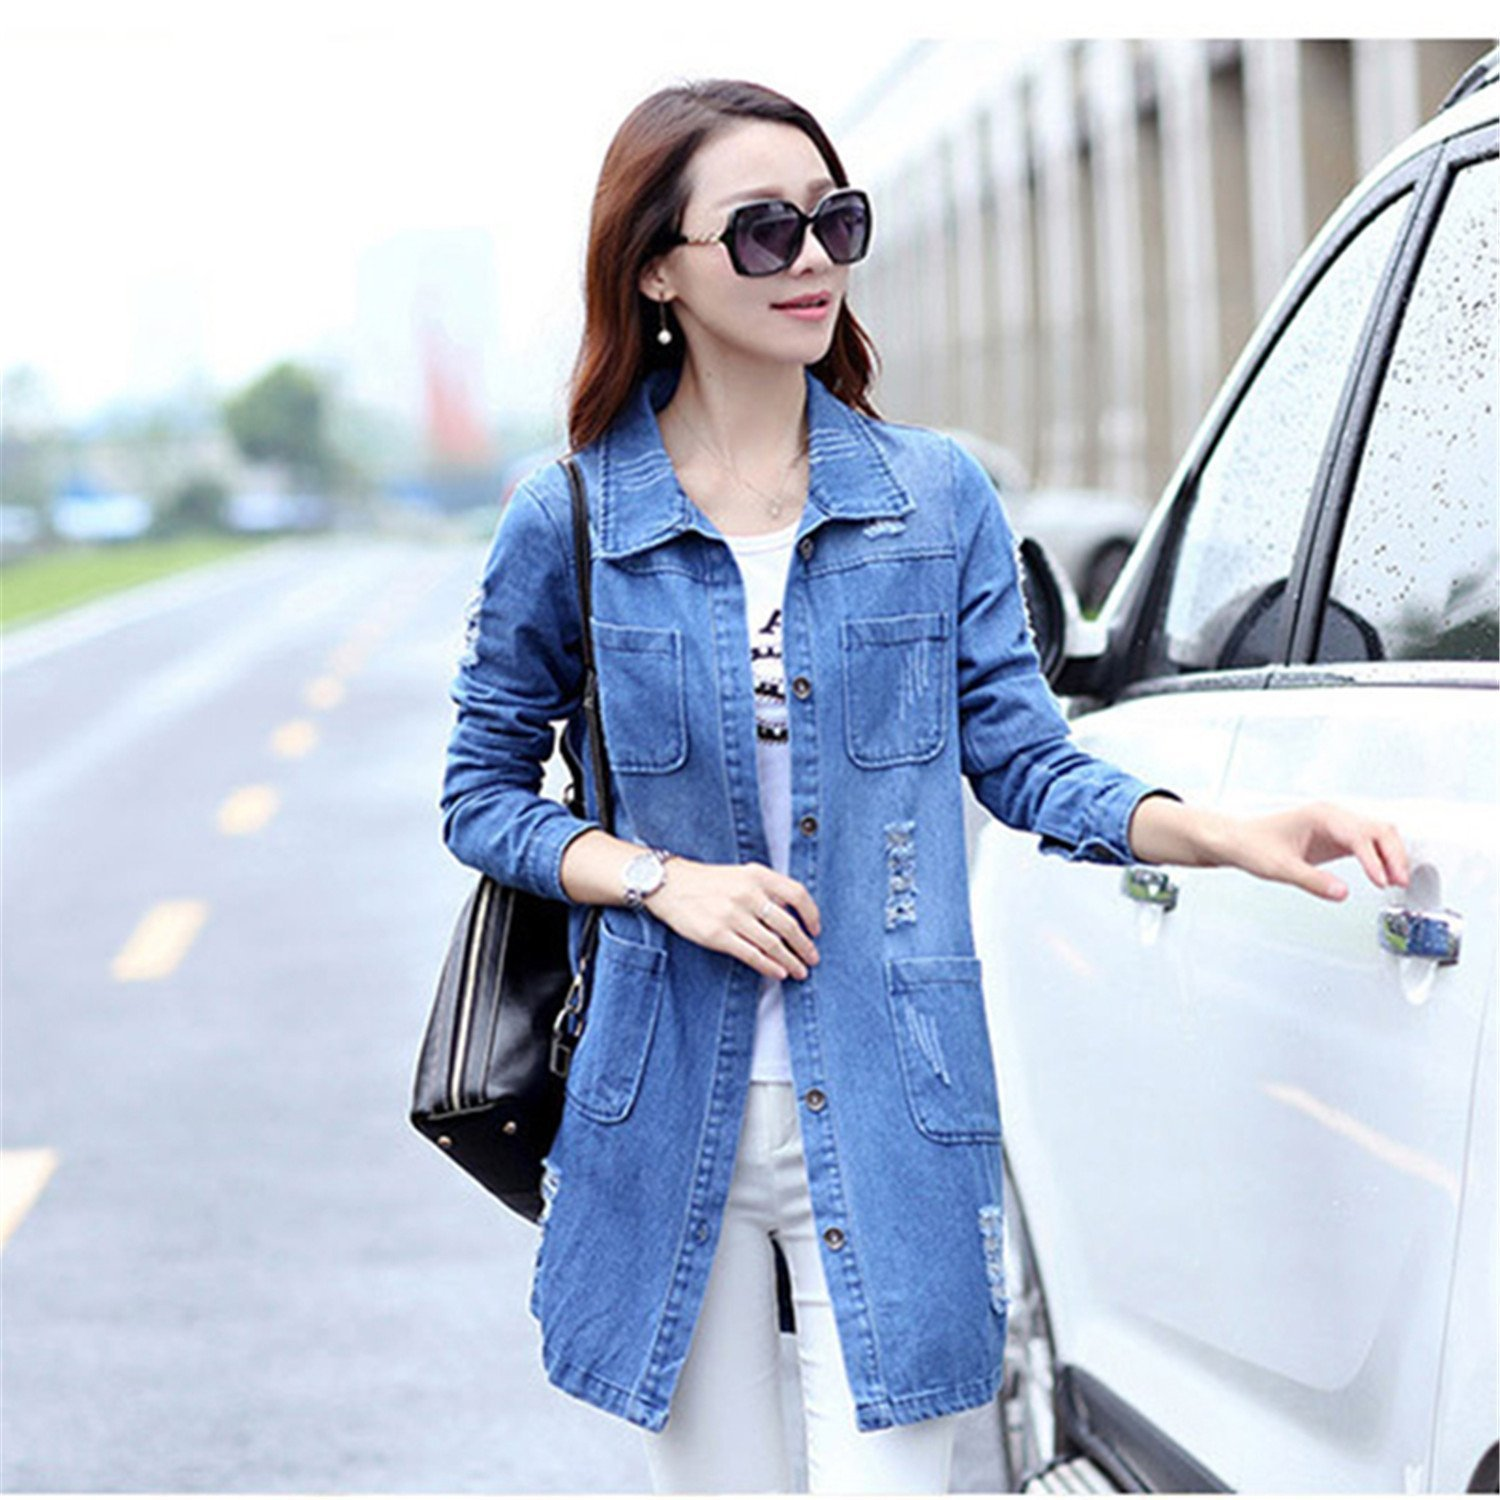 c077a1a069 B dressy Plus Size 5XL Denim Jacket Women Fashion Long Sleeve Jeans Coat  Female Casual Ripped Denim Jacket Tops at Amazon Women s Coats Shop